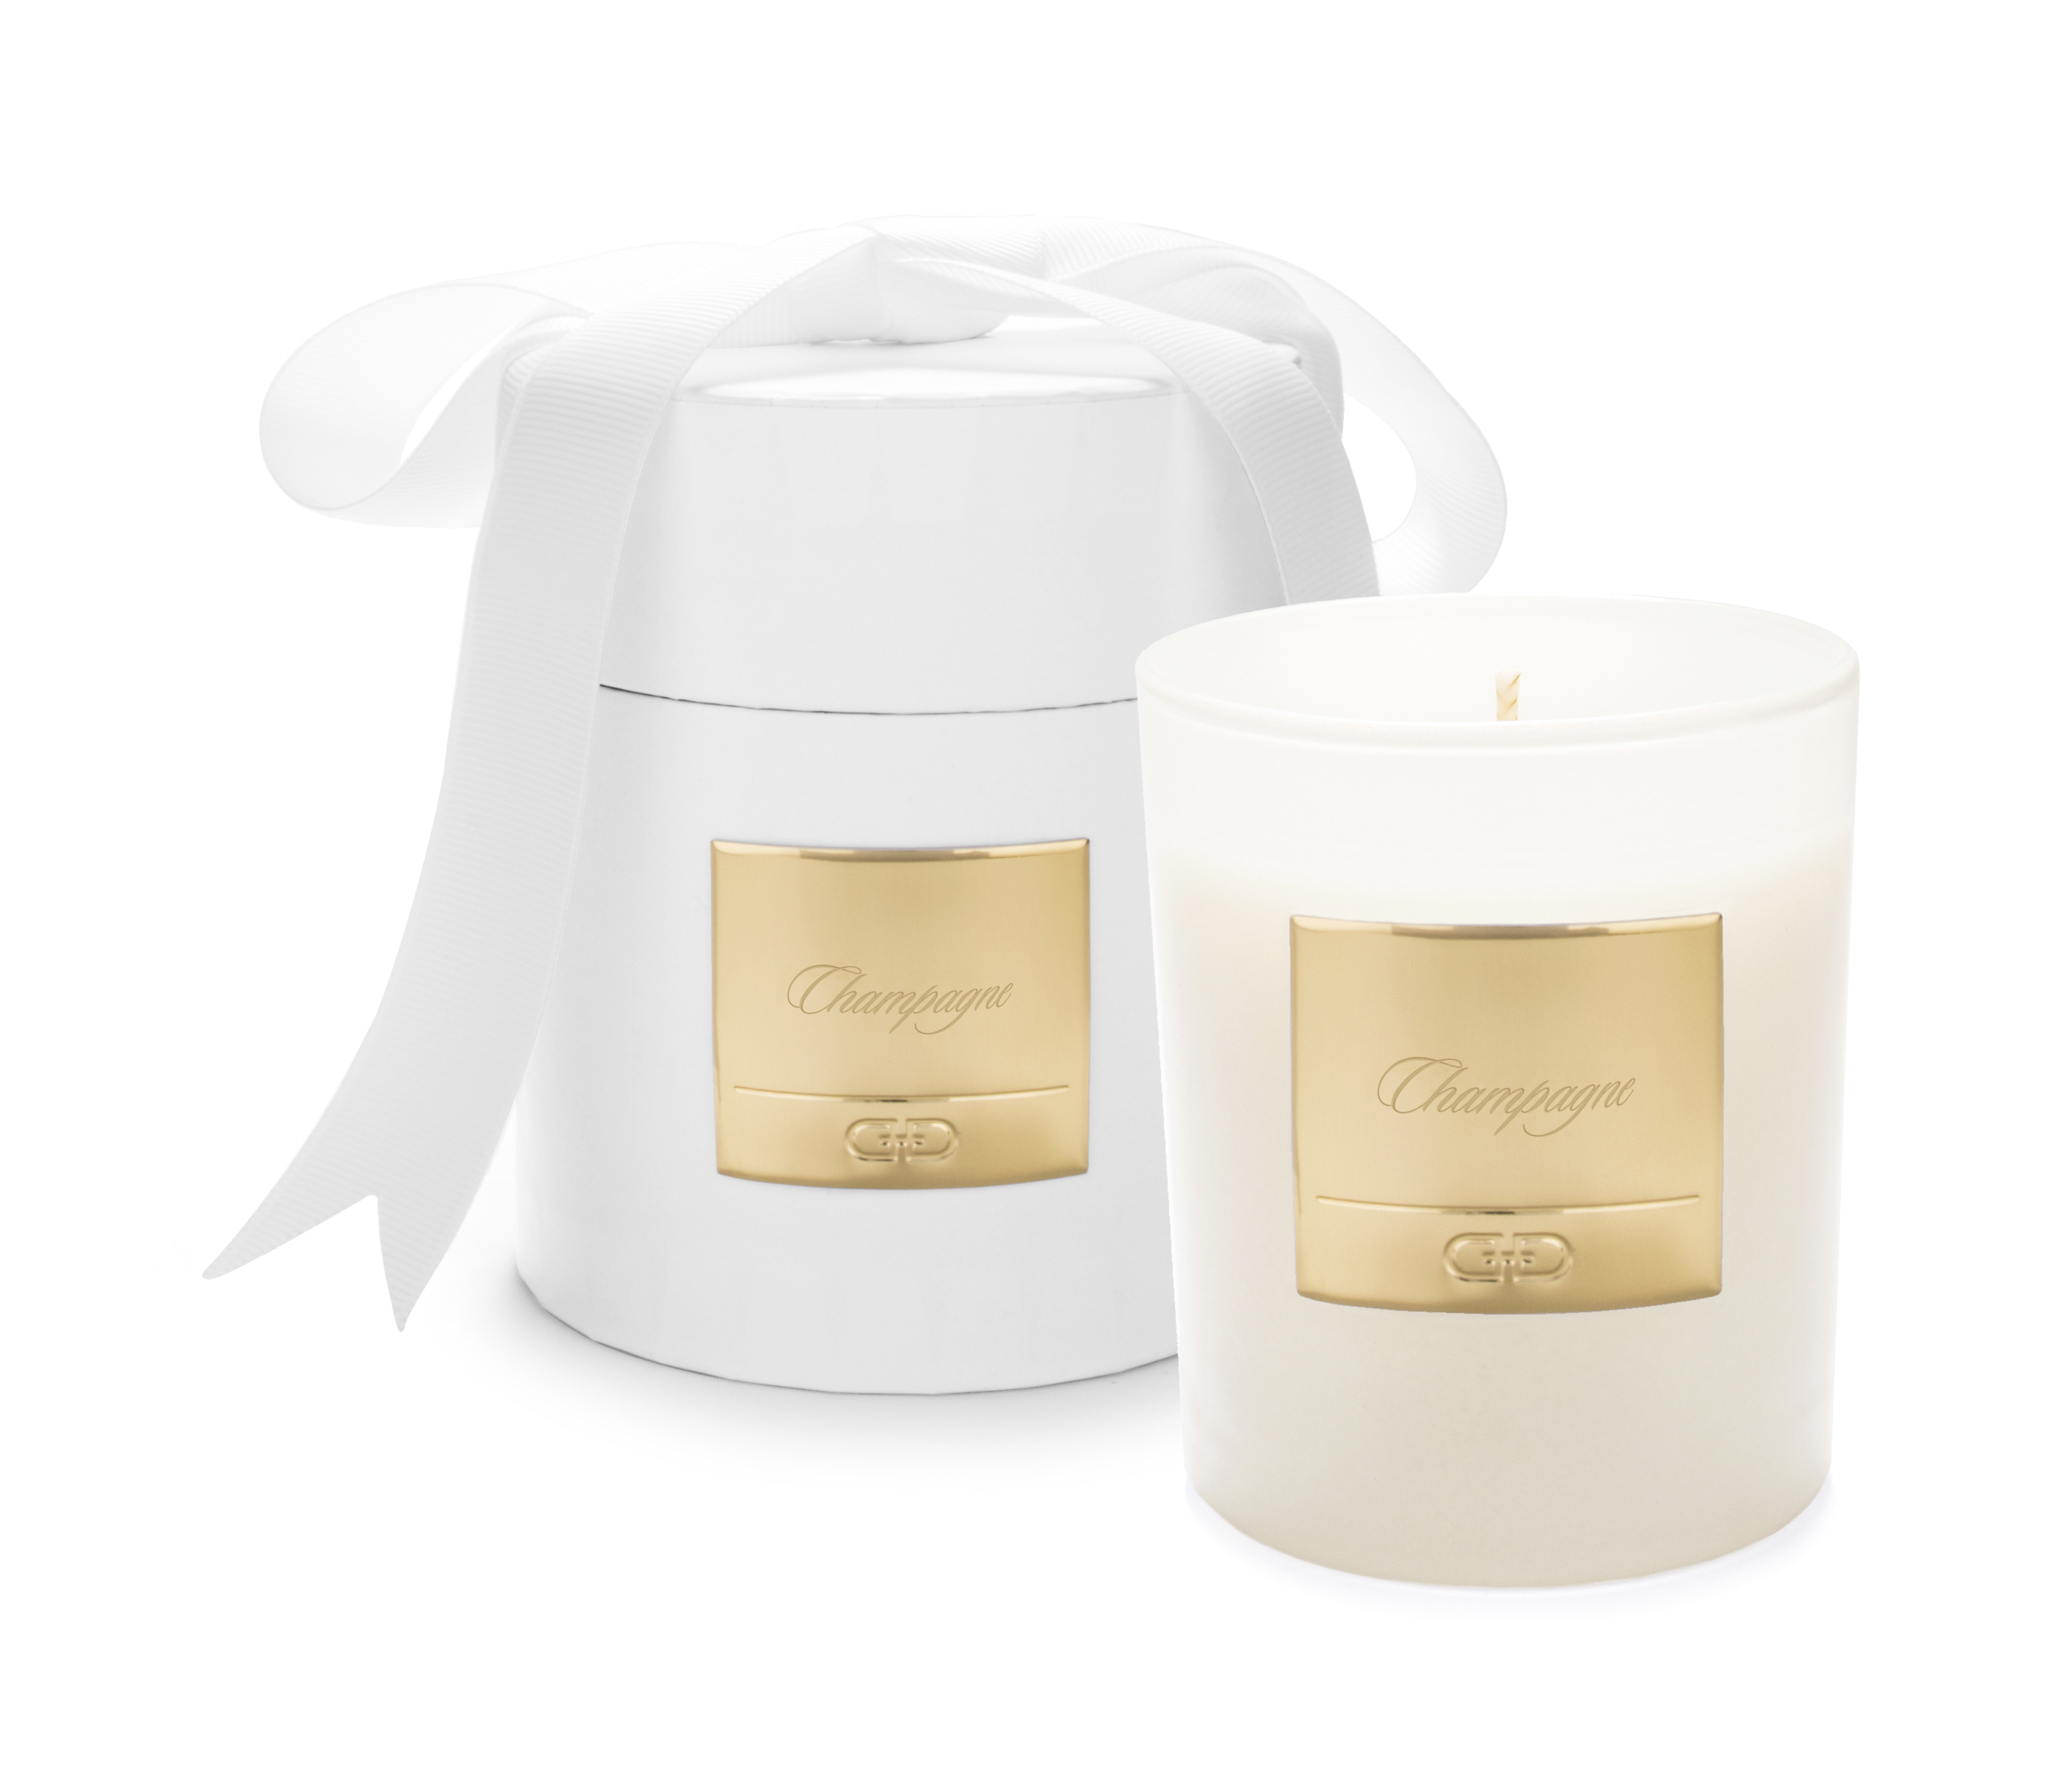 Champagne - White & Gold luxury candle